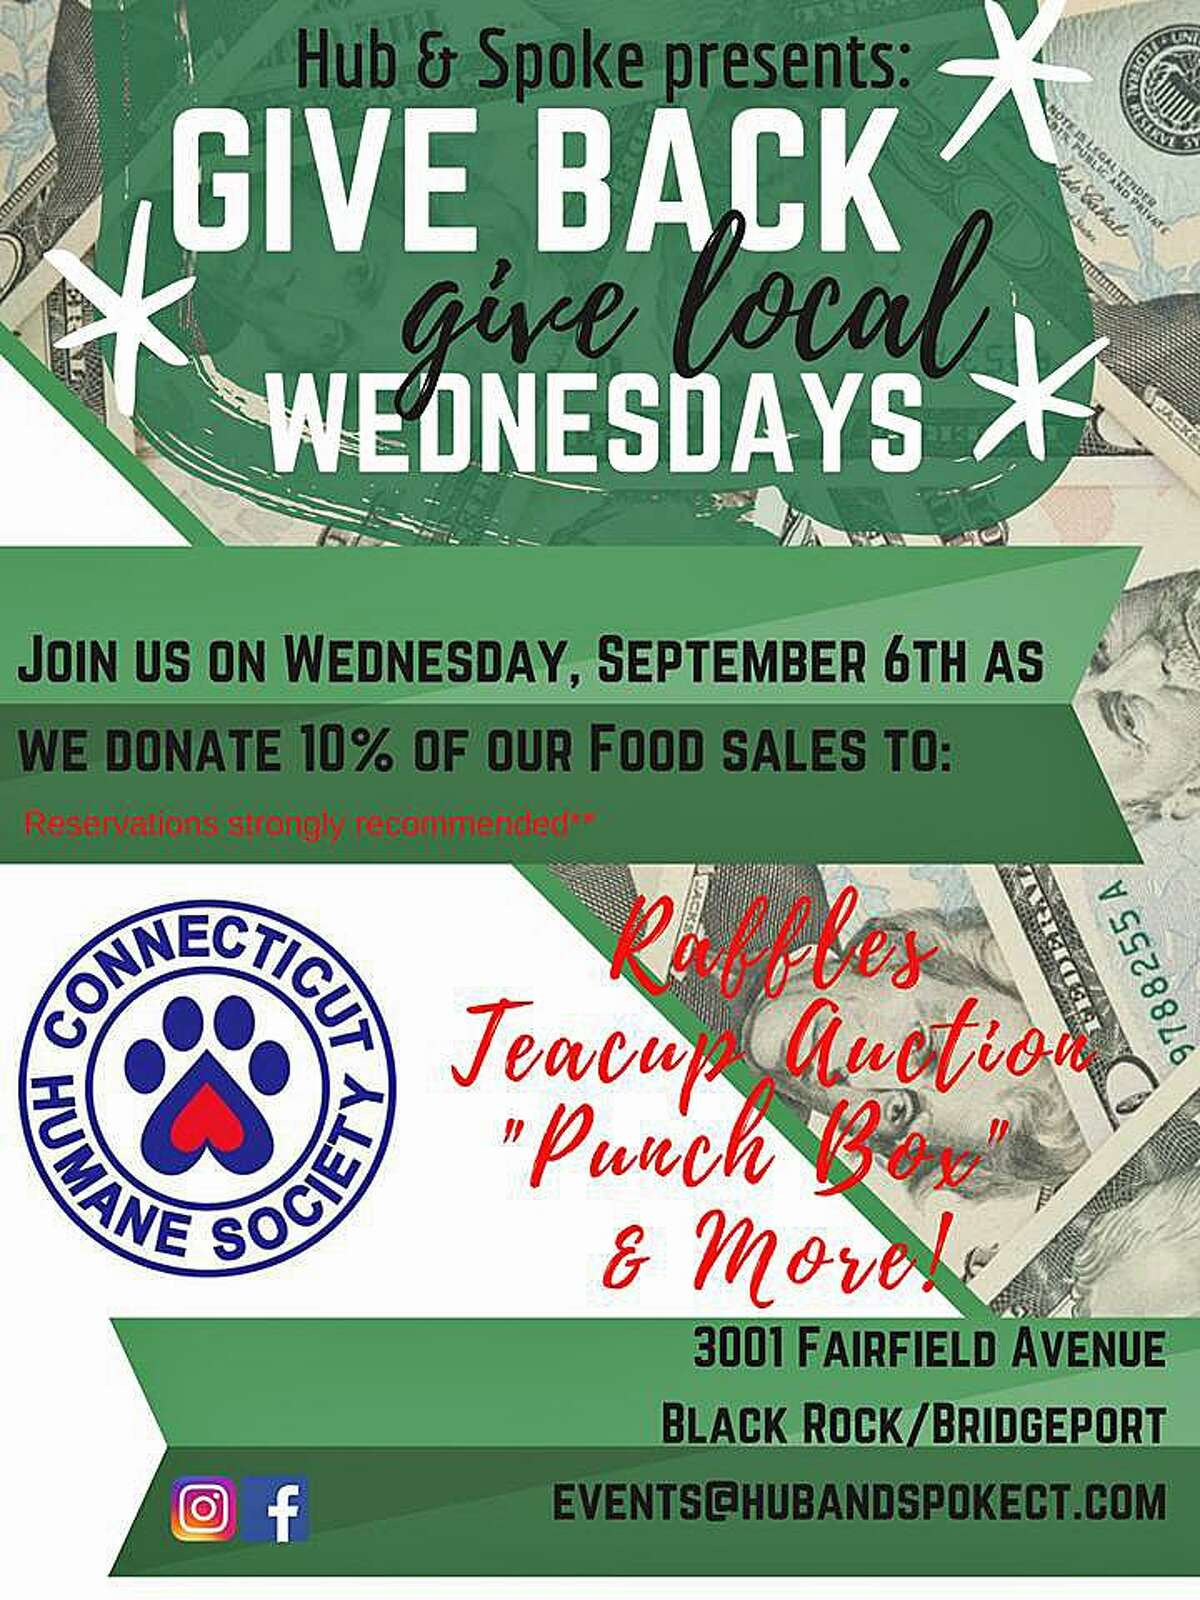 From 11:30 a.m. to 11 p.m. on Wednesday, Sept. 6, 2017, 10 percent of food purchases at Hub & Spoke restaurant at 3001 Fairfield Ave. in Bridgeport, Conn., will be donated to Connecticut Humane Society?'s pets.